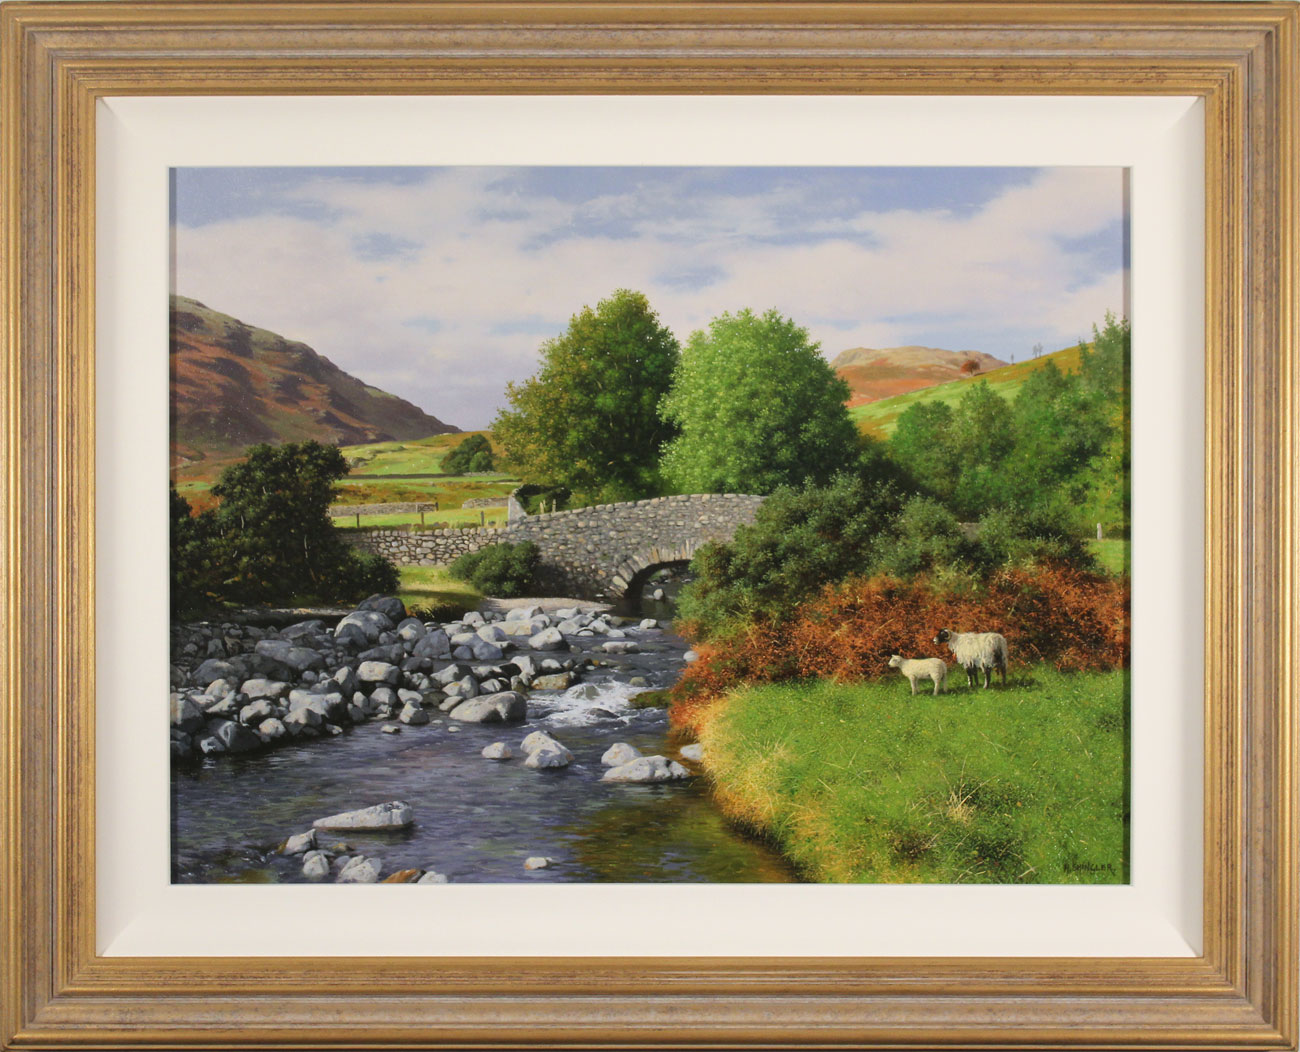 Howard Shingler, Original oil painting on panel, Overbeck Bridge, Wastwater Click to enlarge